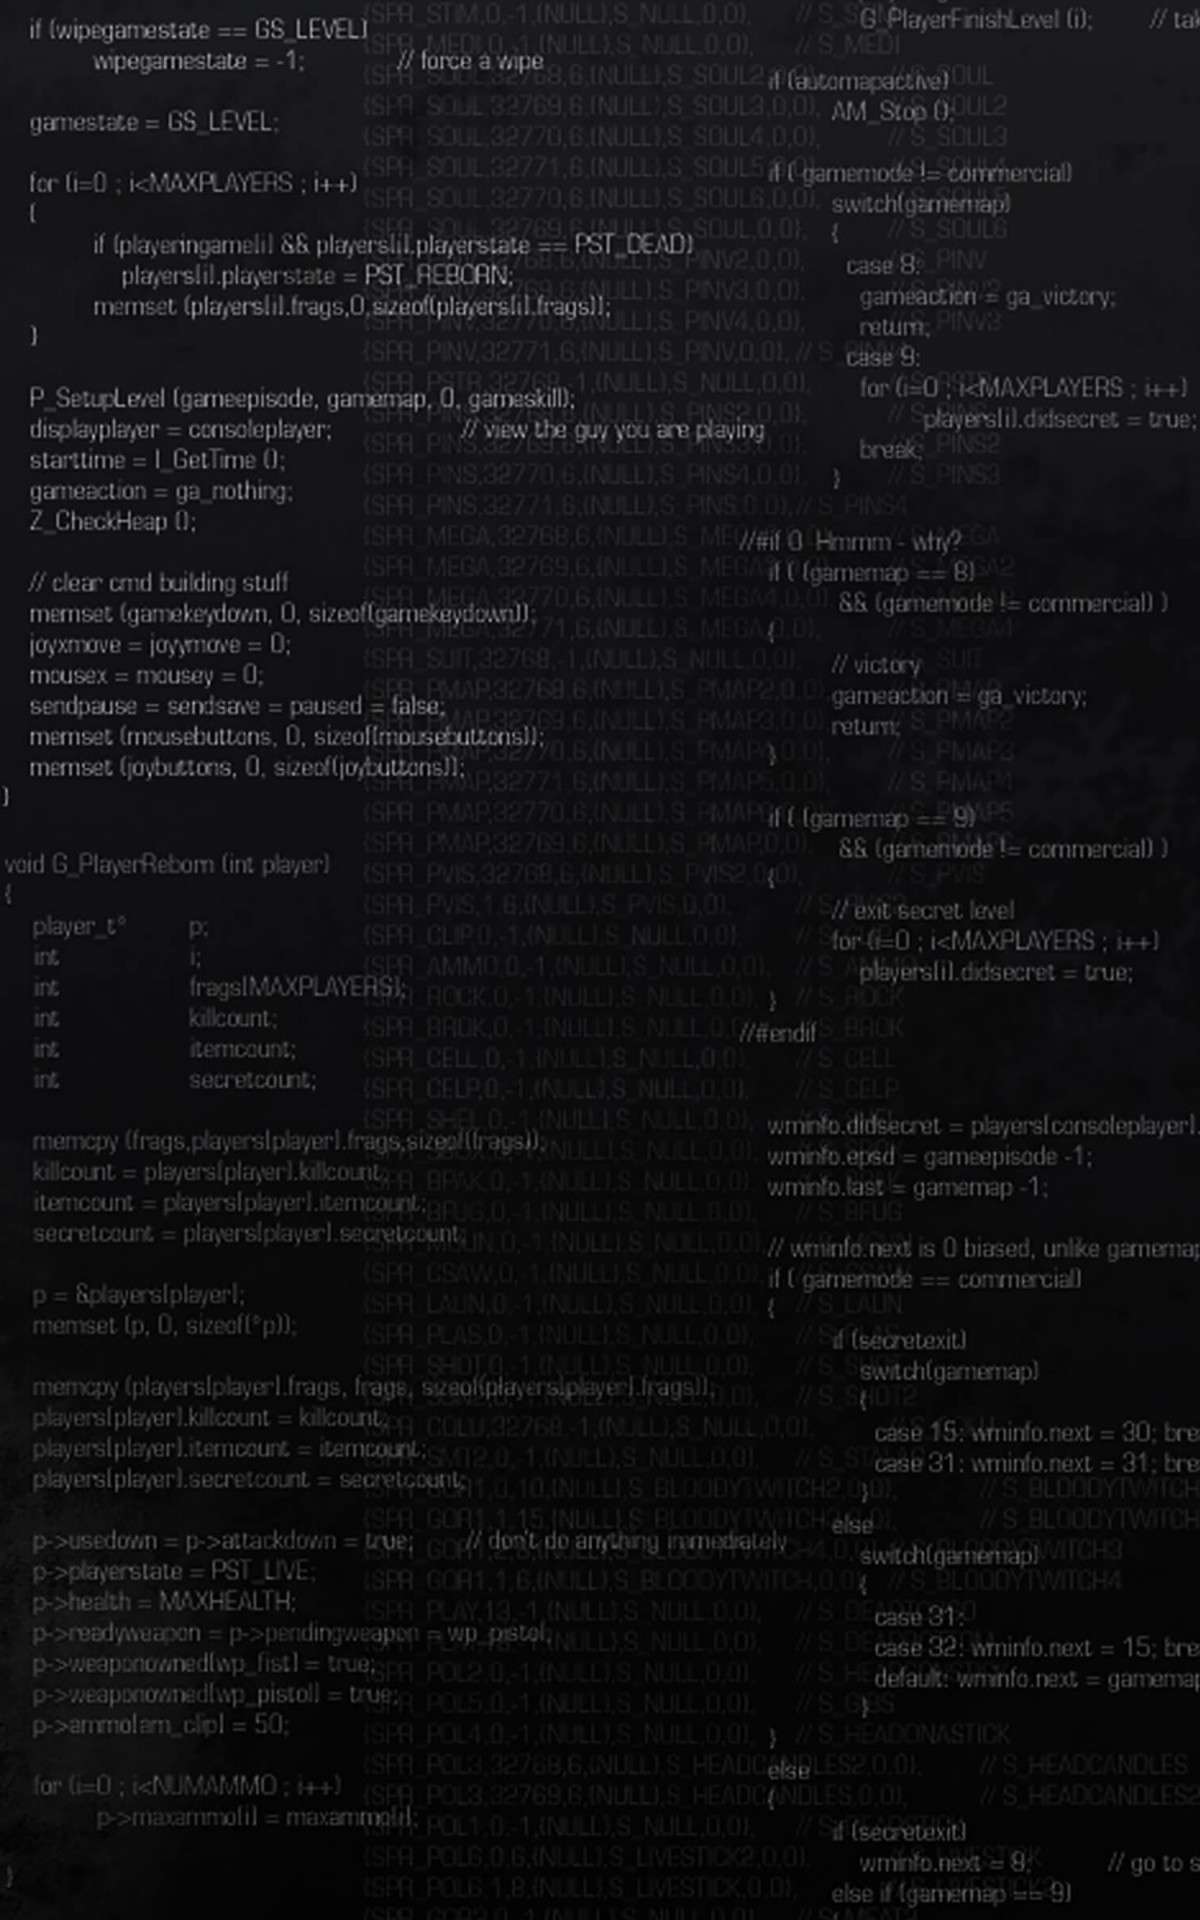 Programming Wallpaper for Amazon Kindle Fire HDX